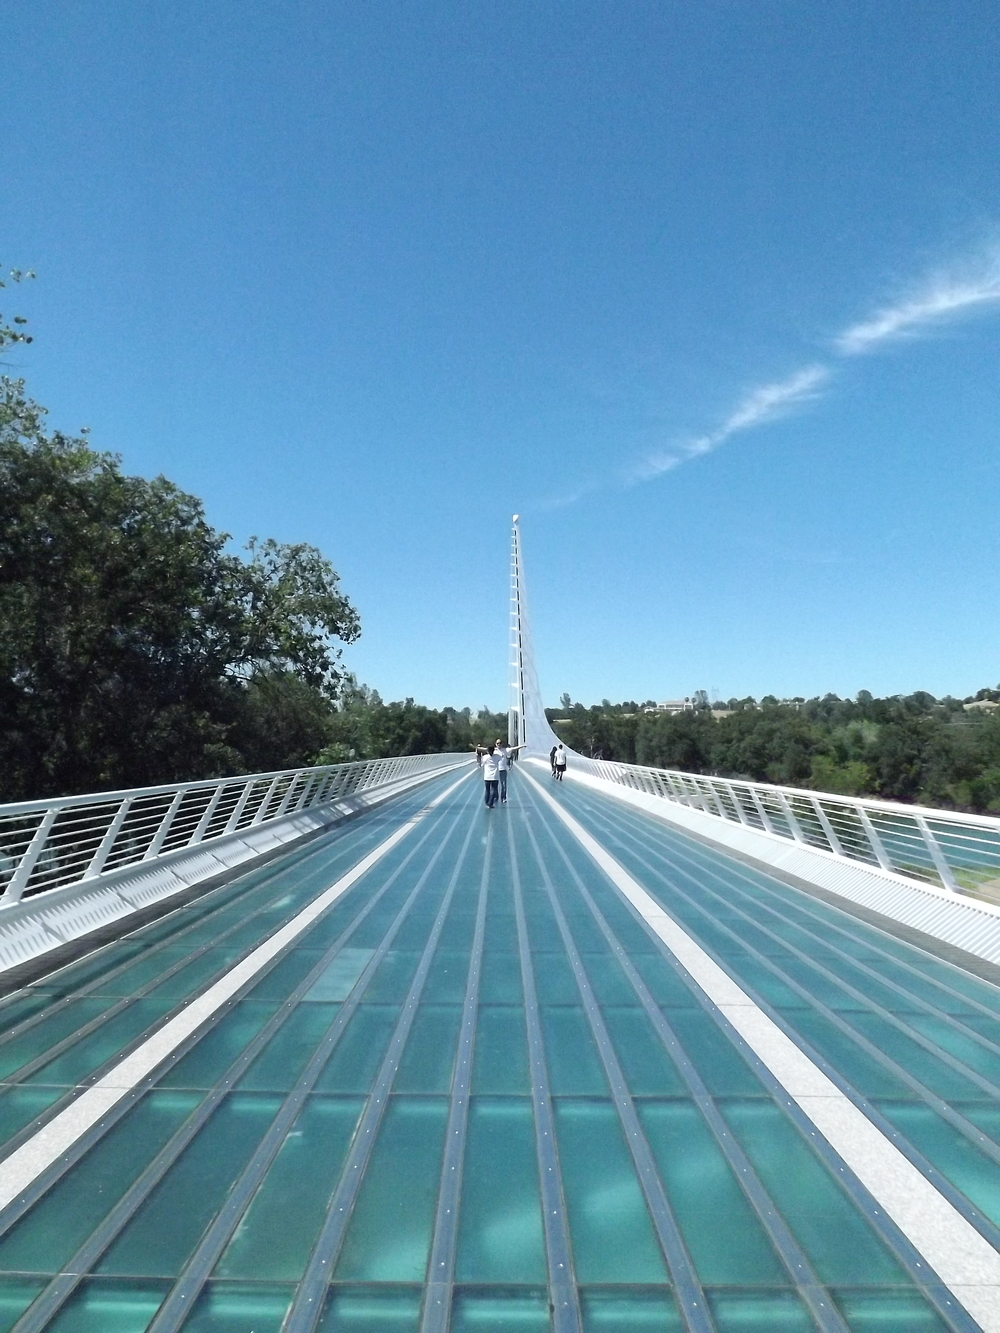 The Sundial Bridge.